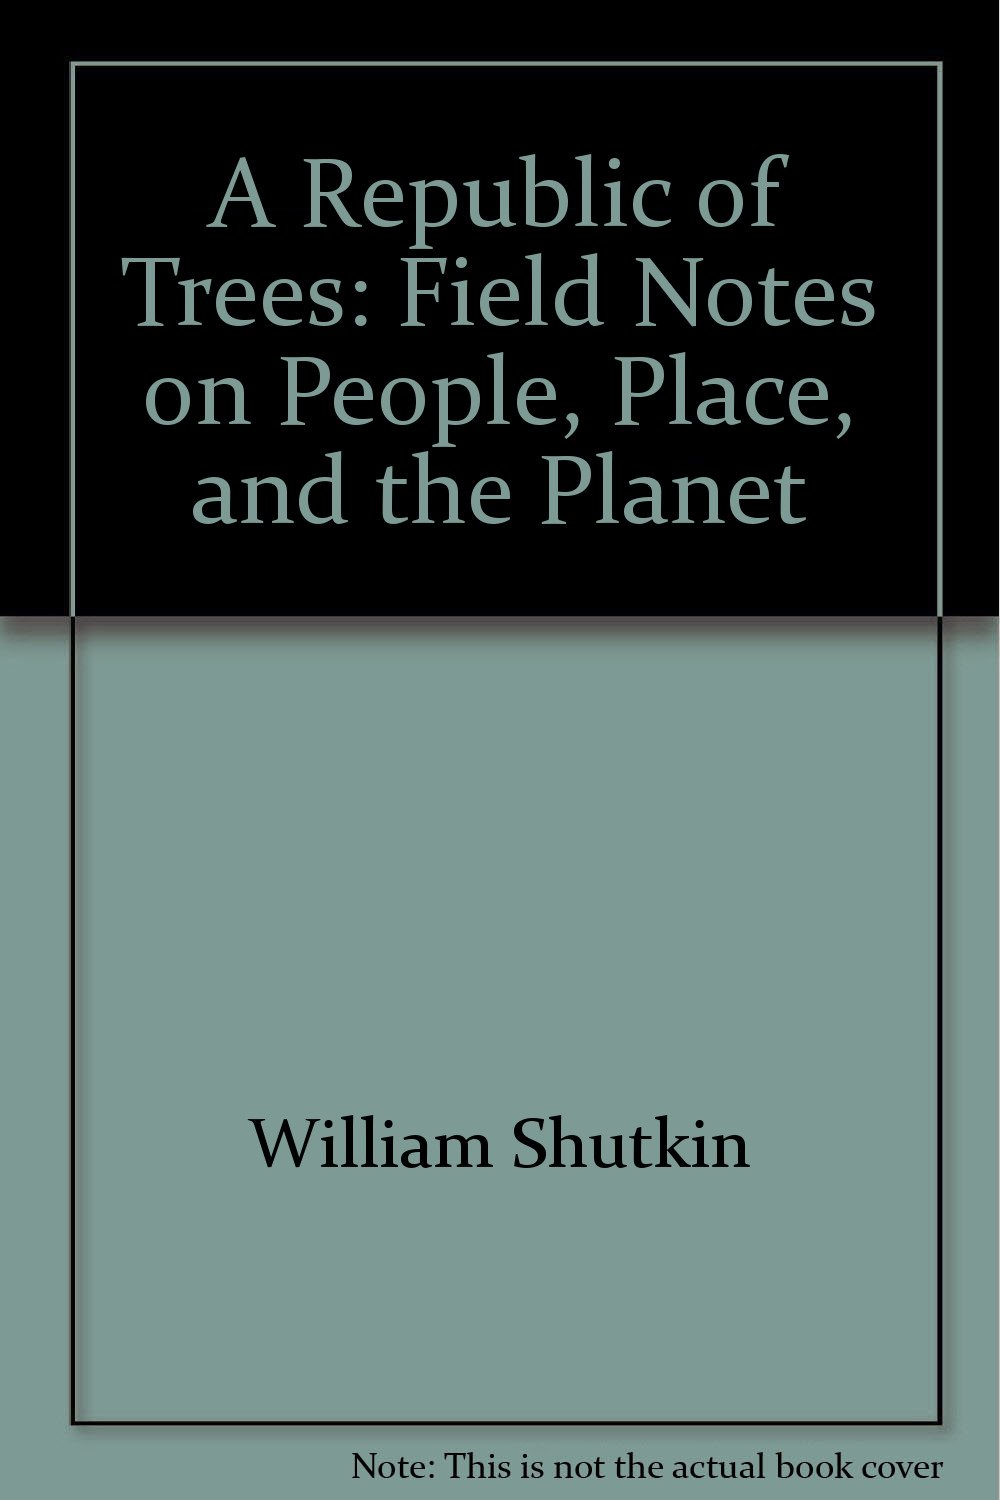 A Republic of Trees: Field Notes on People, Place, and the Planet pdf